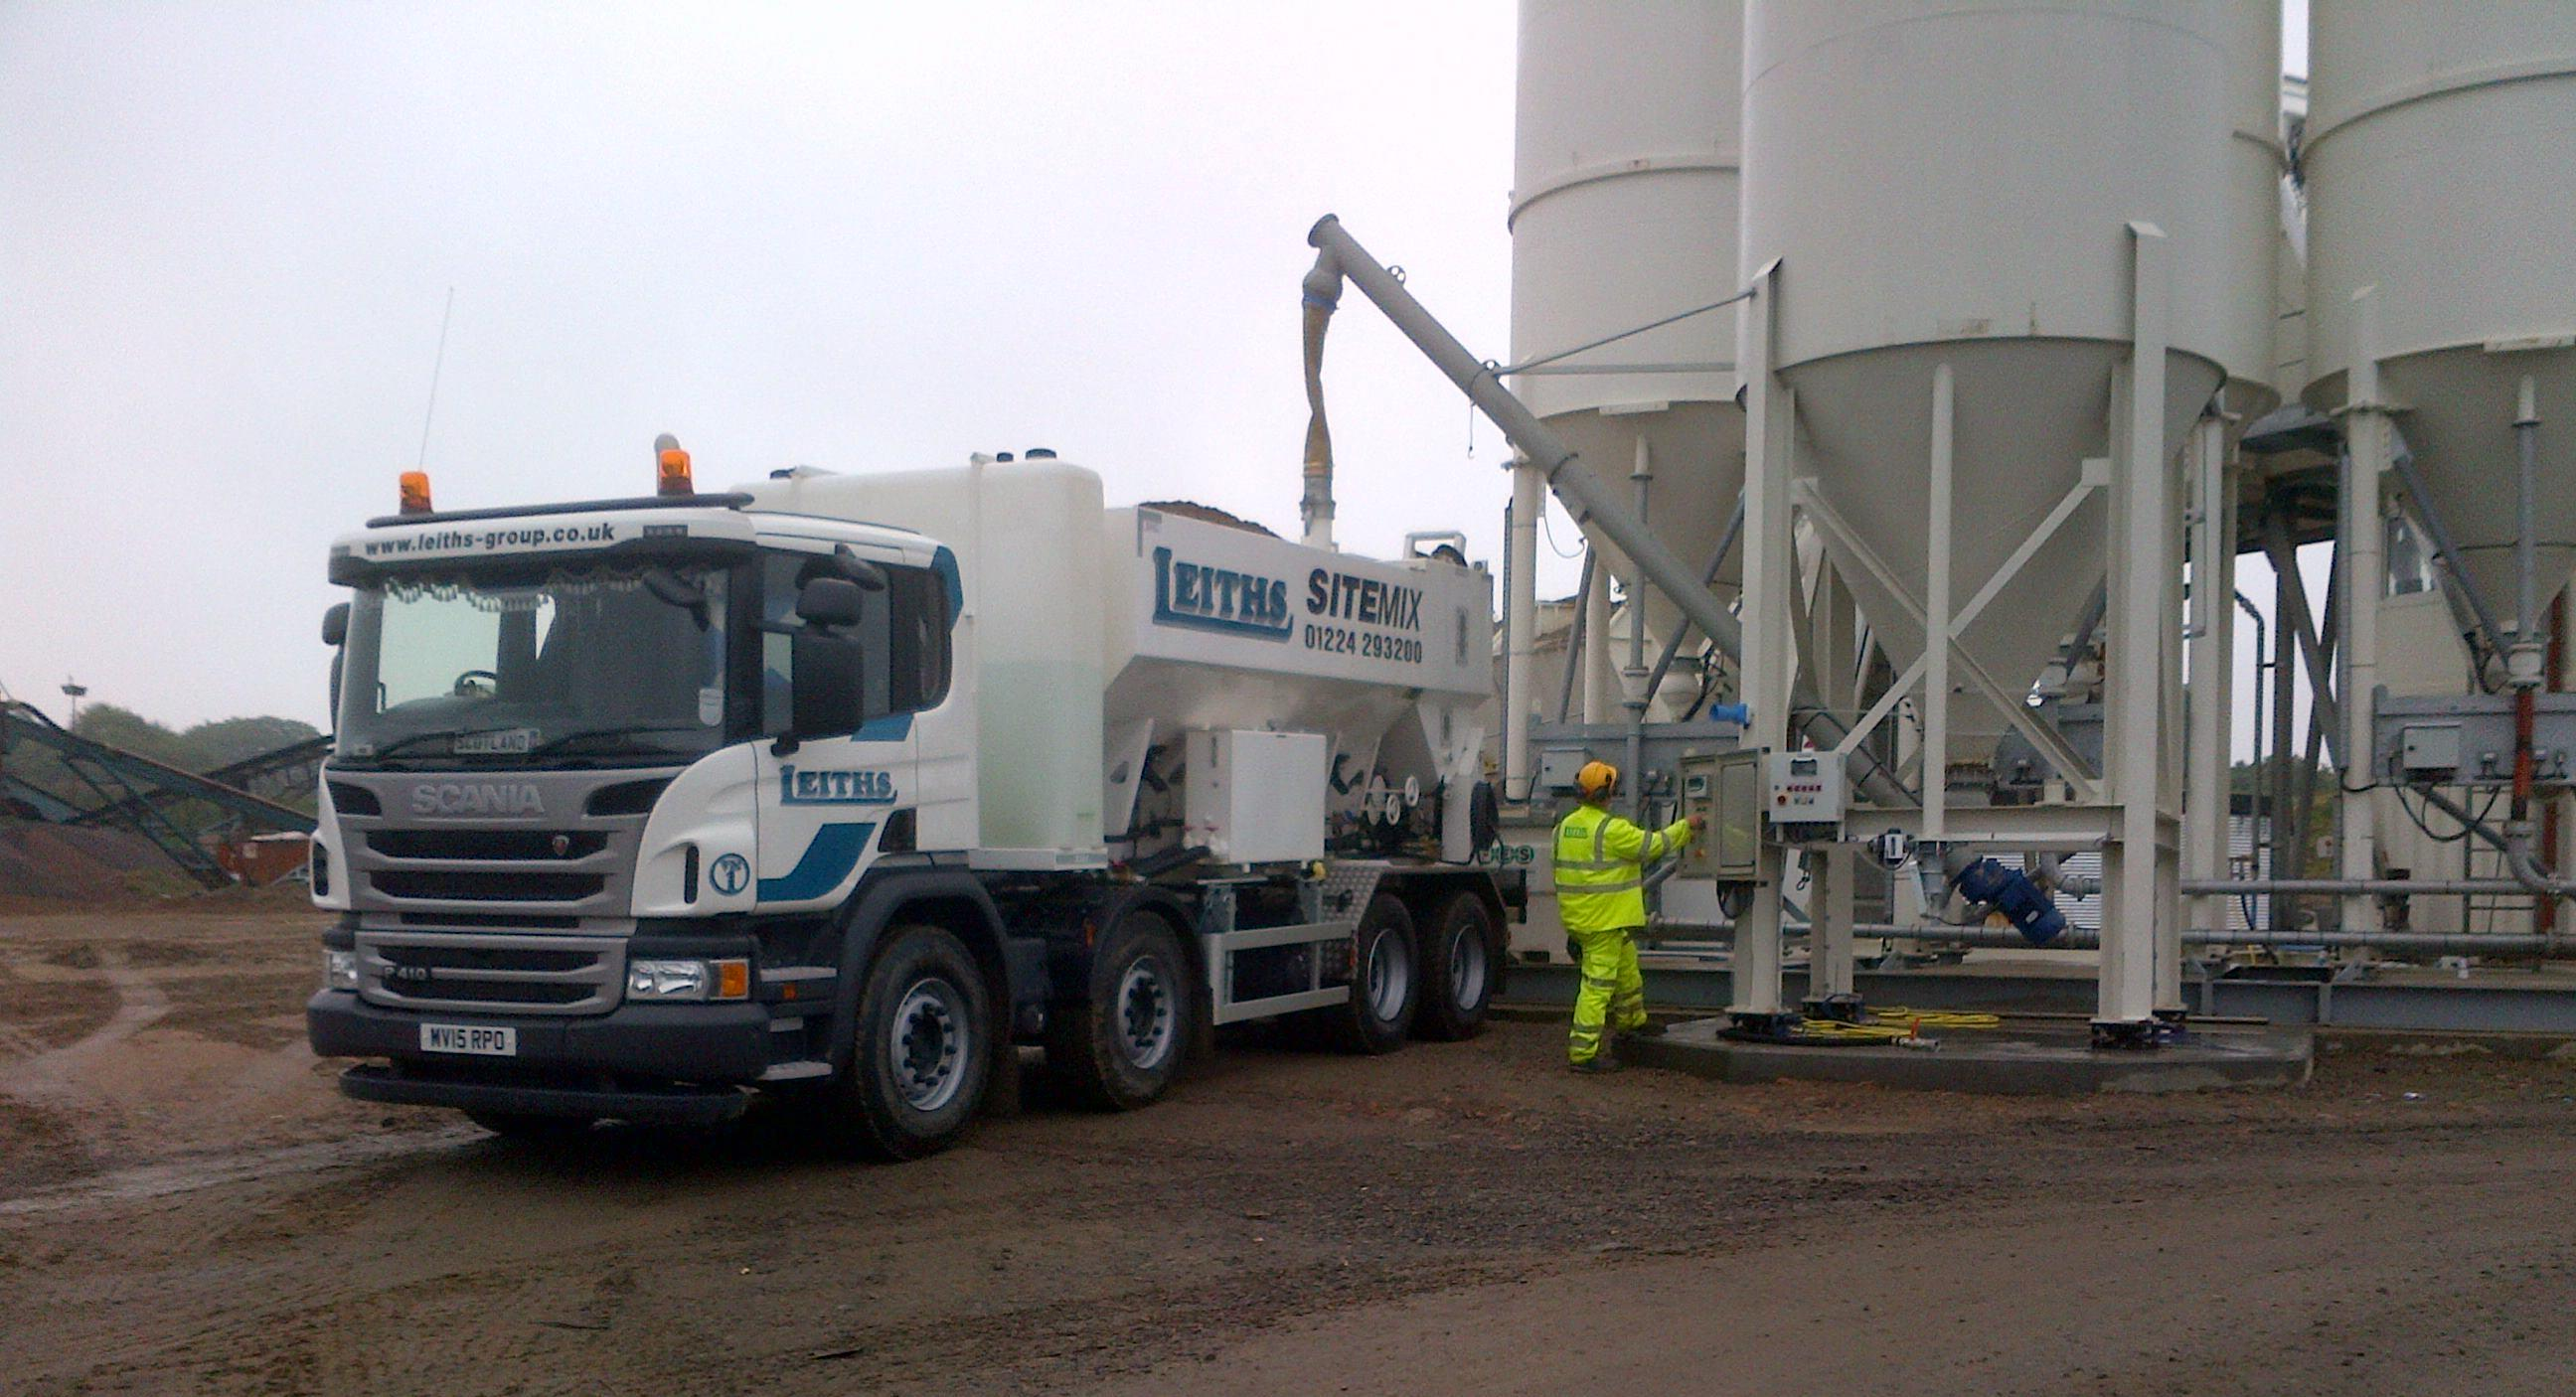 Leiths - Ready Mix Concrete